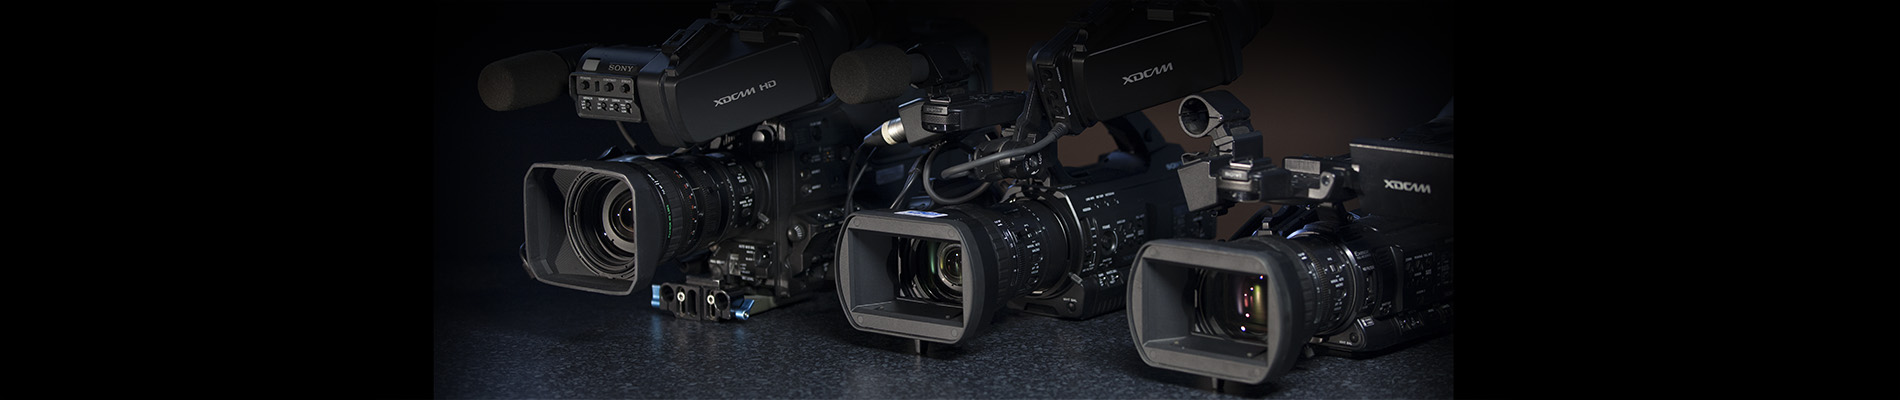 Sony PMW cameras. Great for live event video camera rental in Adelaide